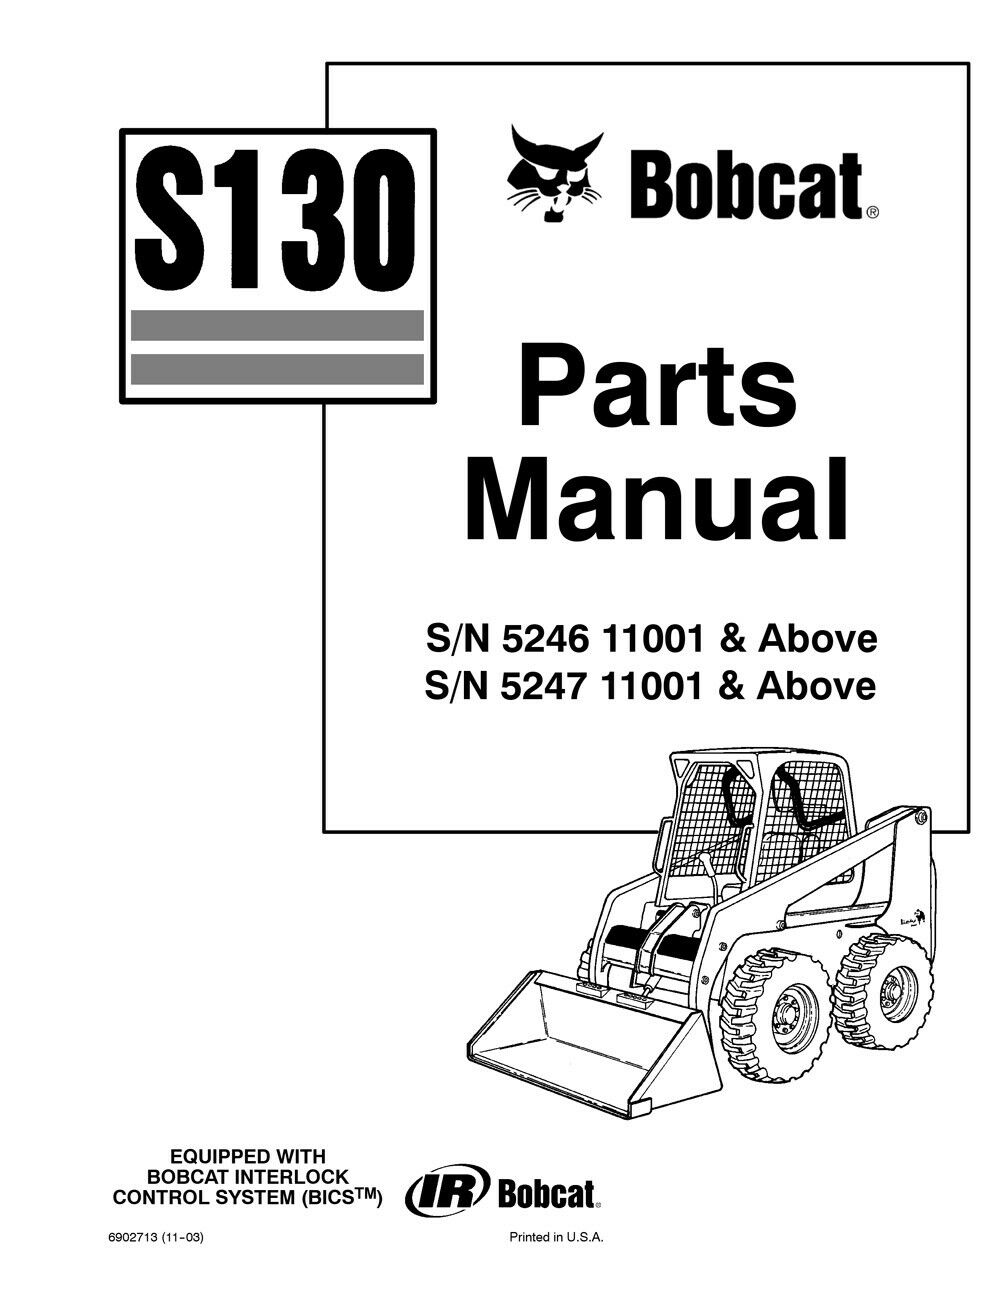 hight resolution of bobcat s130 skid steer loader parts manual 6902713 ebay rh ebay com bobcat s130 parts manual free bobcat s130 parts list